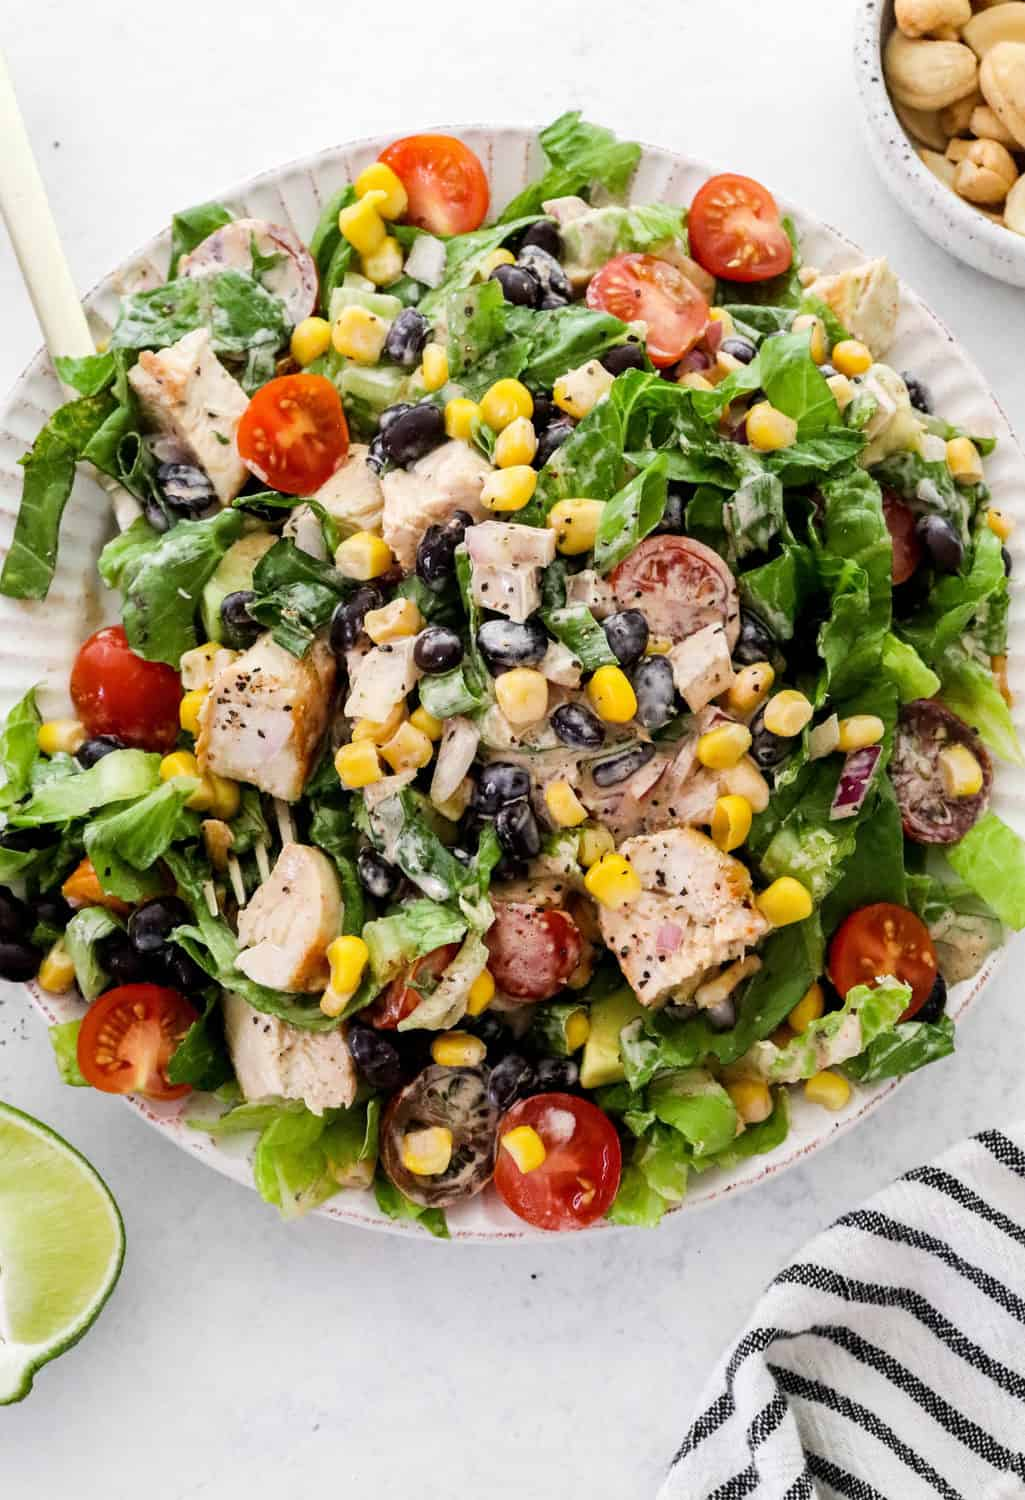 Pile of a mixed chicken salad over romaine lettuce with black beans and corn in it on a round white plate with a gold fork in it with a bowl of cashews behind it.